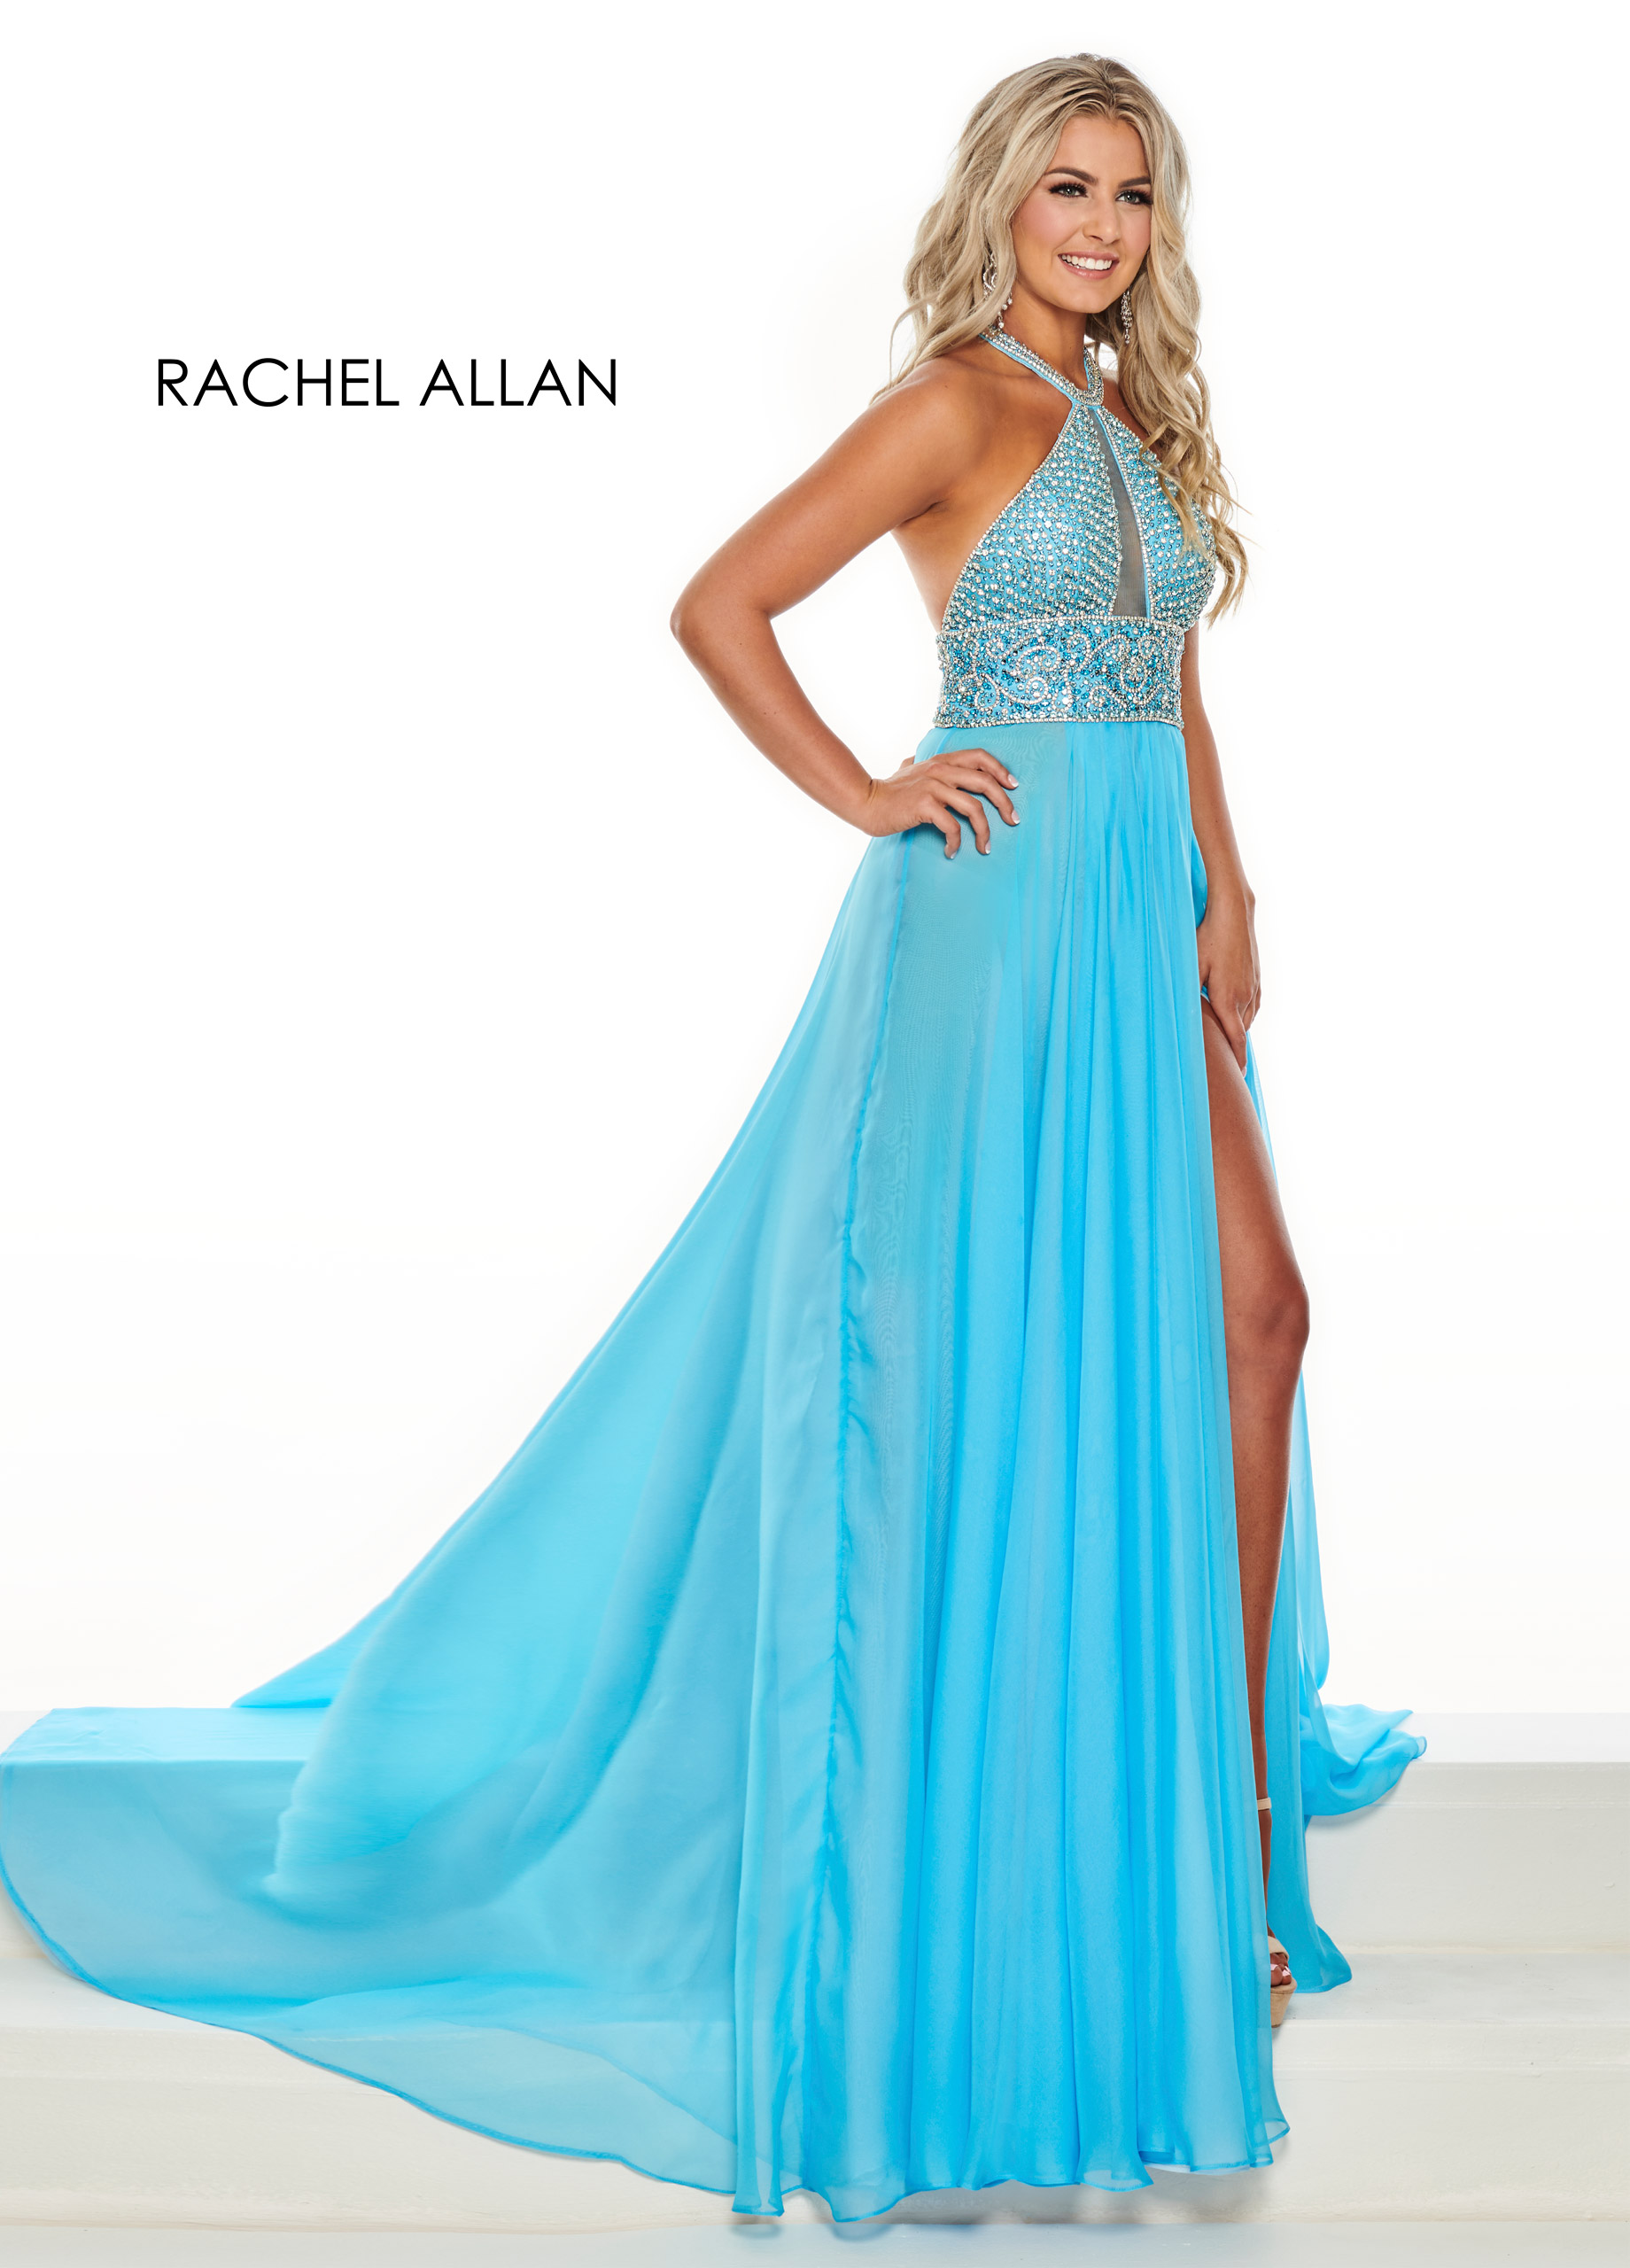 Halter A-Line Pageant Dresses in Blue Color